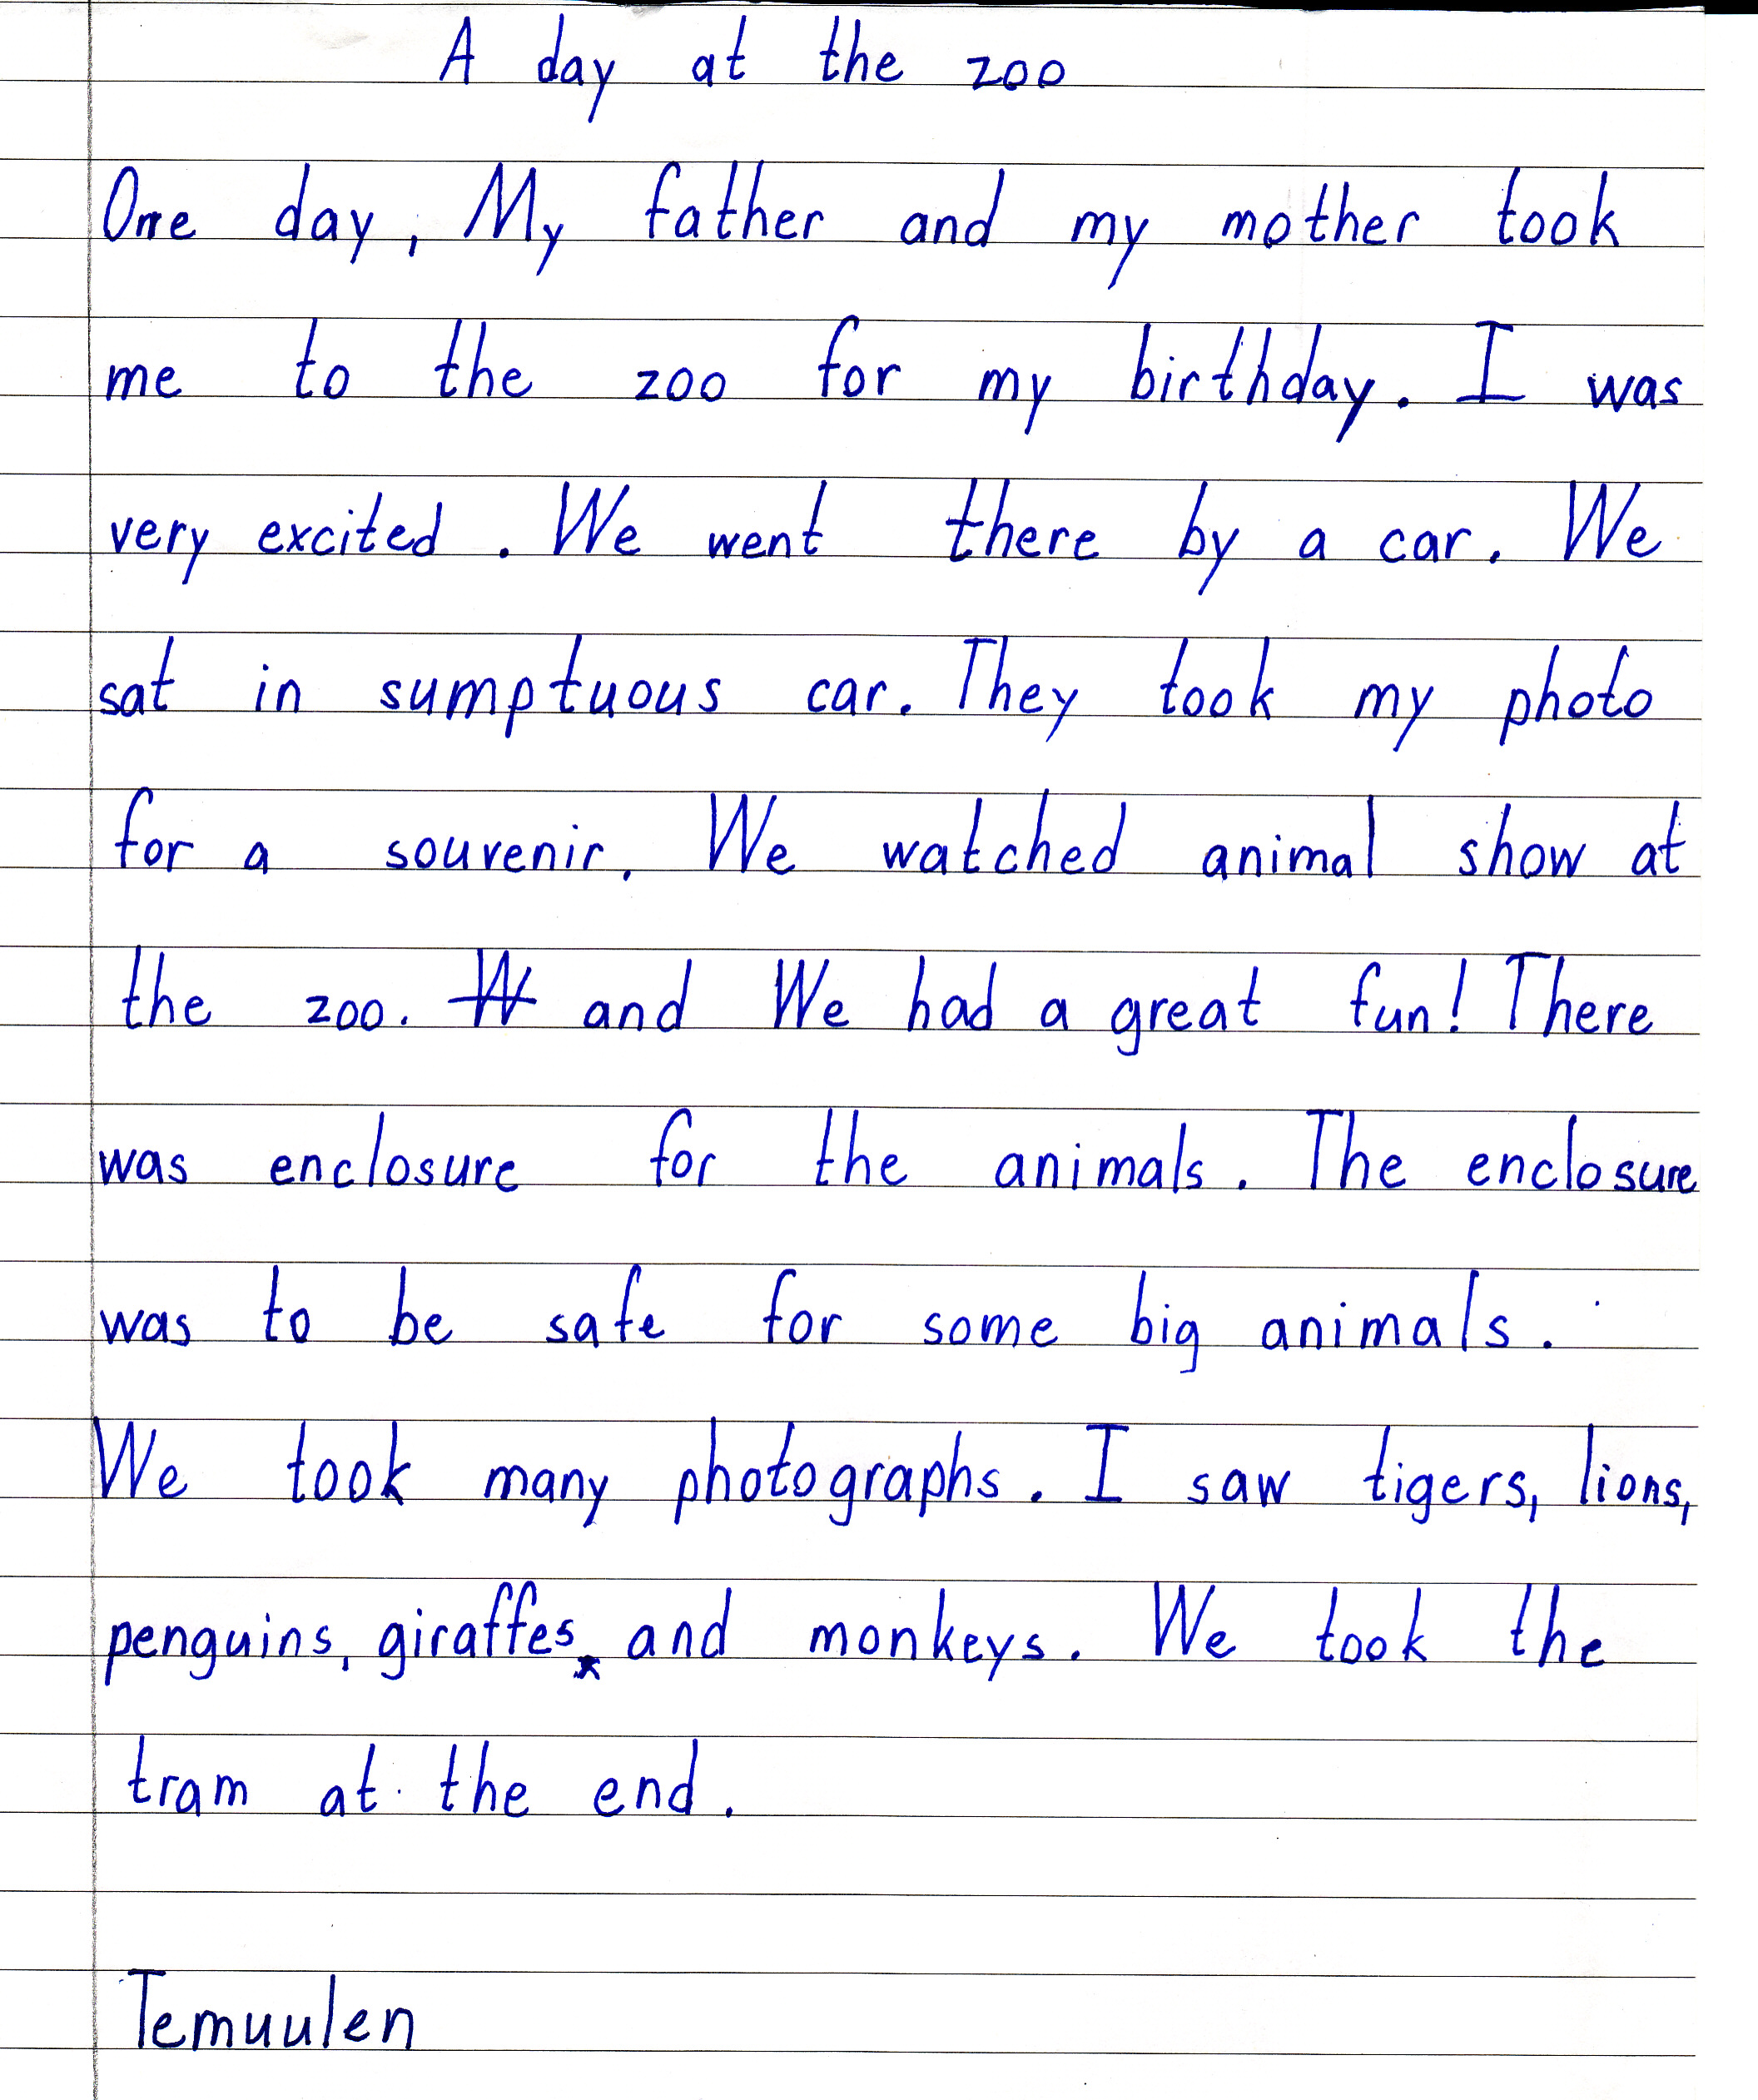 the vist essay A visit to a zoo essay for school students of class 1 to 3 an english essay on a visit to a zoo for kids of lower class.